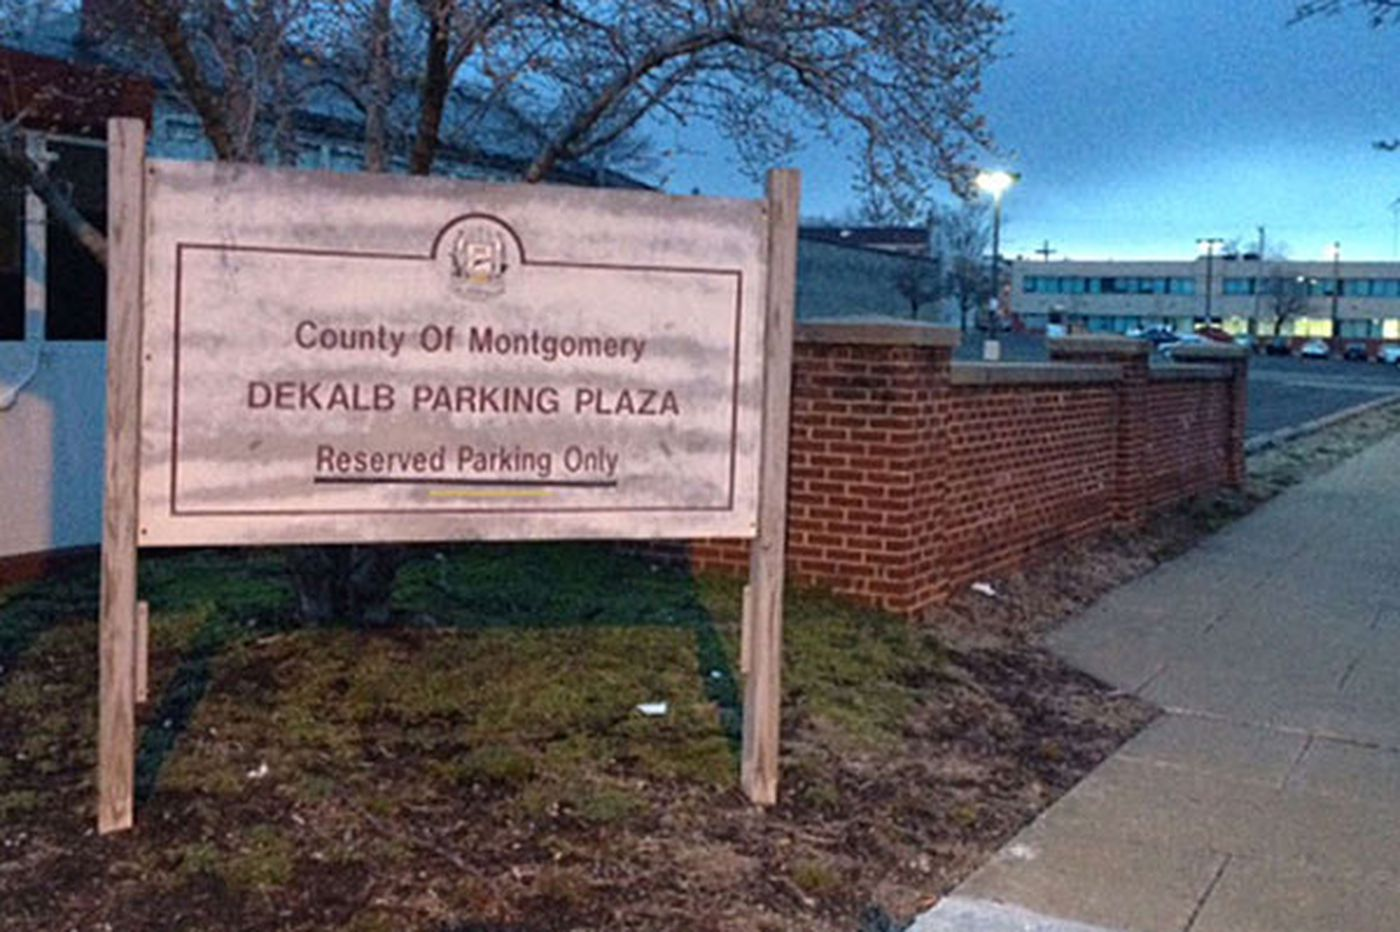 Affordable-housing development moves forward in Norristown